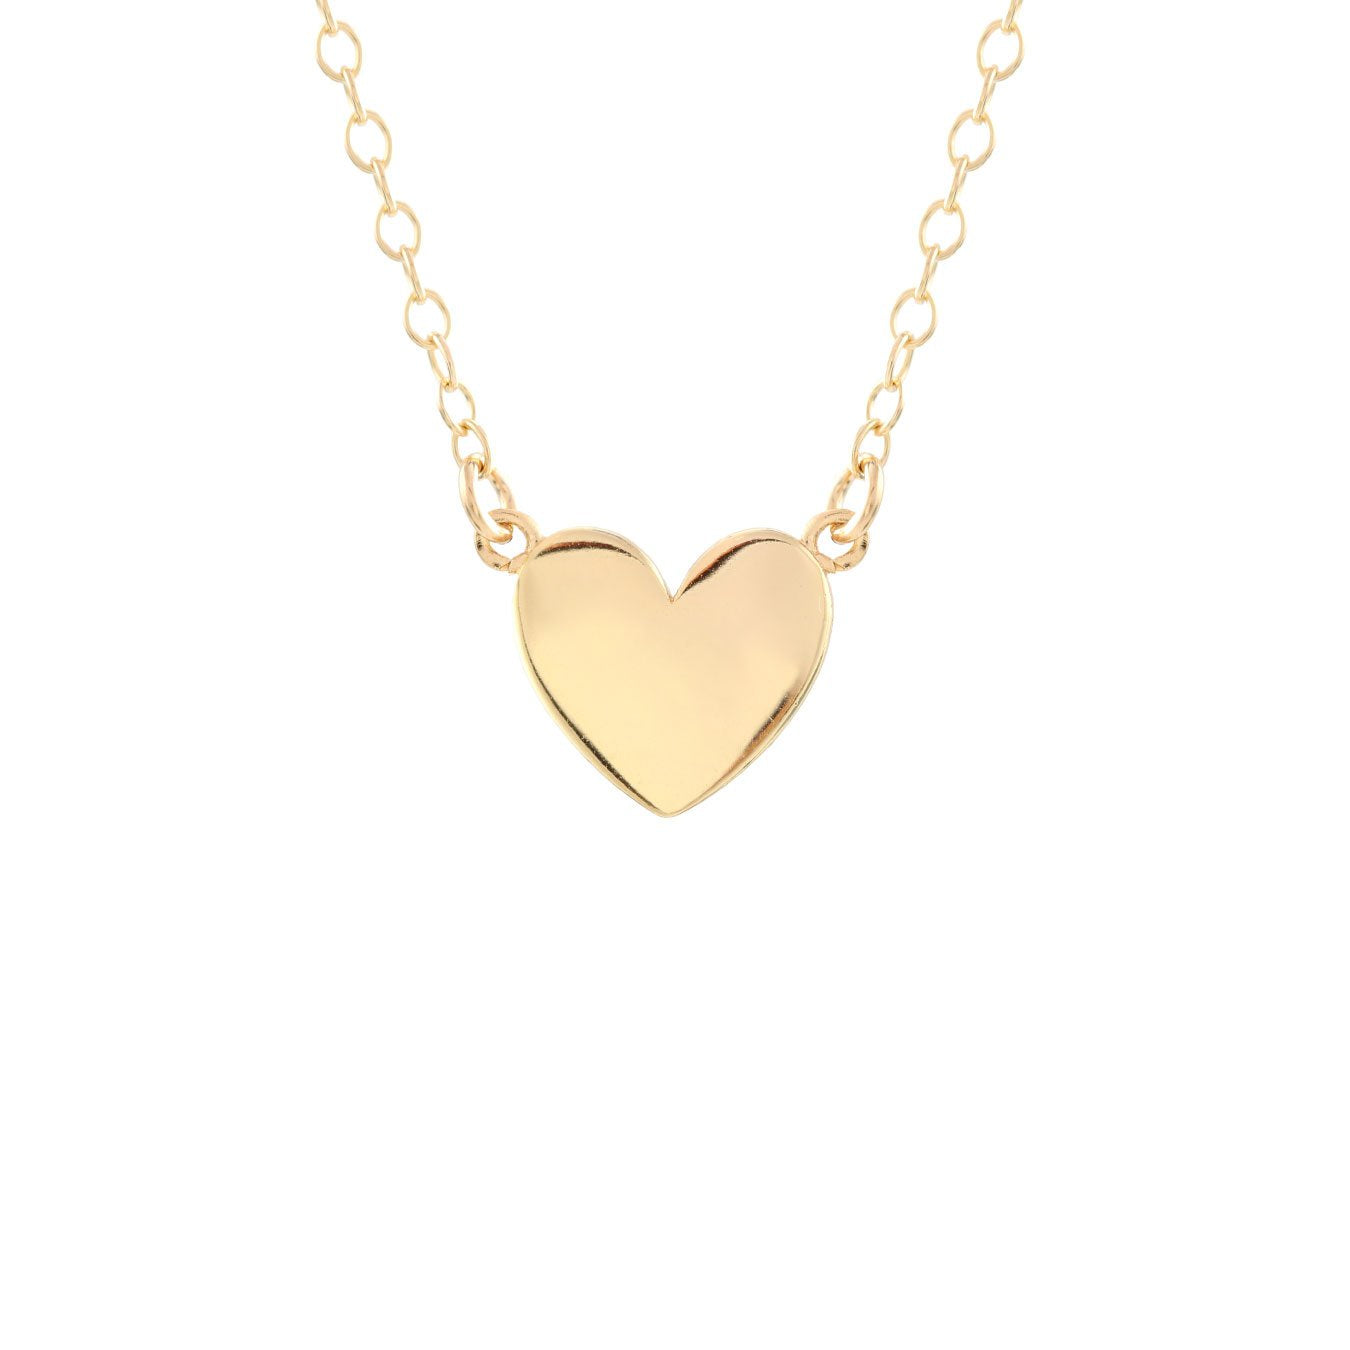 KRIS NATIONS - SOLID HEART CHARM NECKLACE IN 18K GOLD